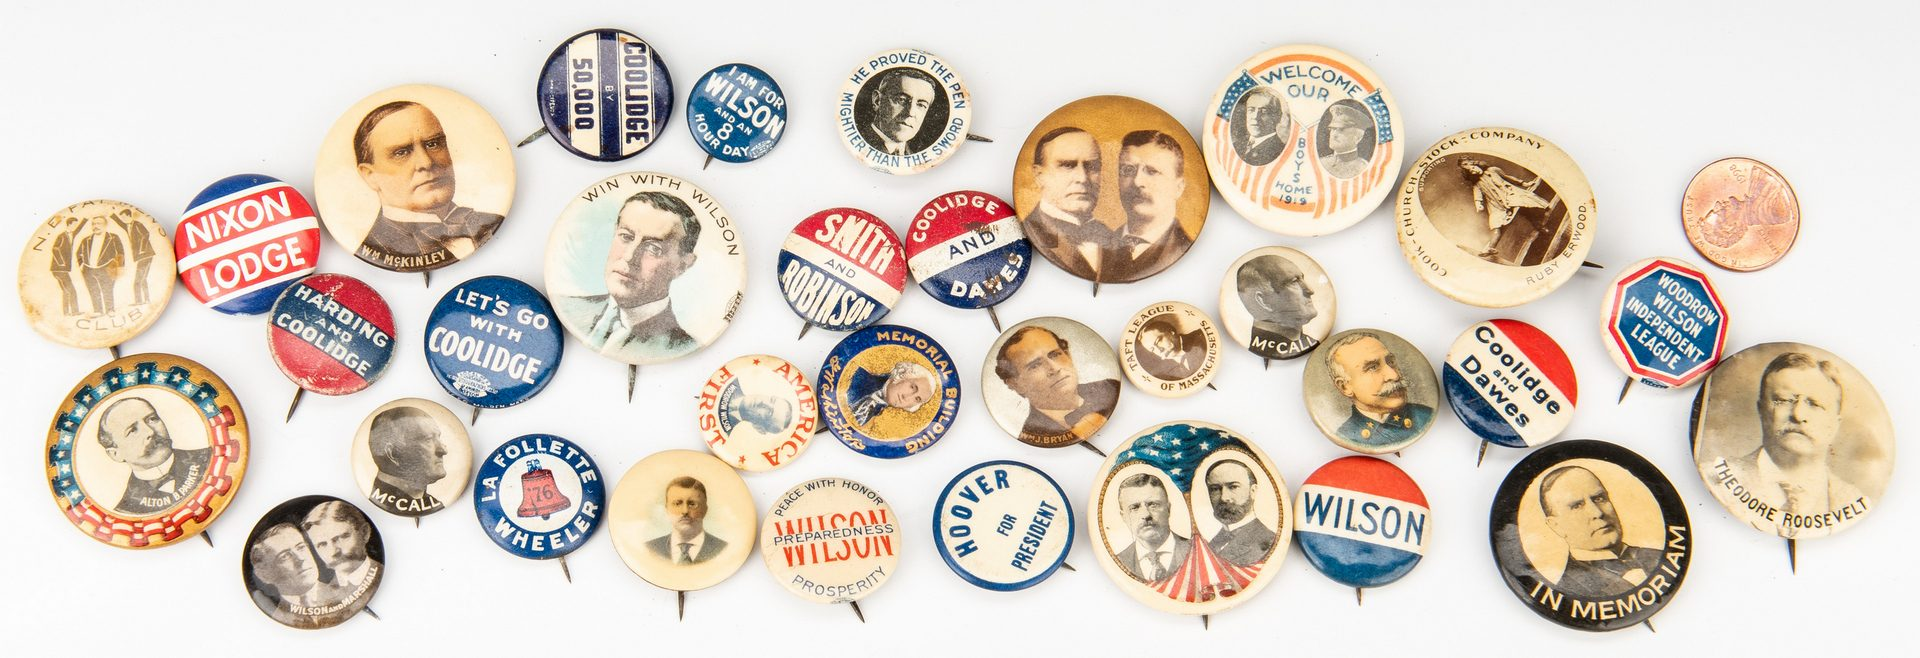 Lot 763: 33 Early Political Pinback Buttons incl. T. Roosevelt & Others